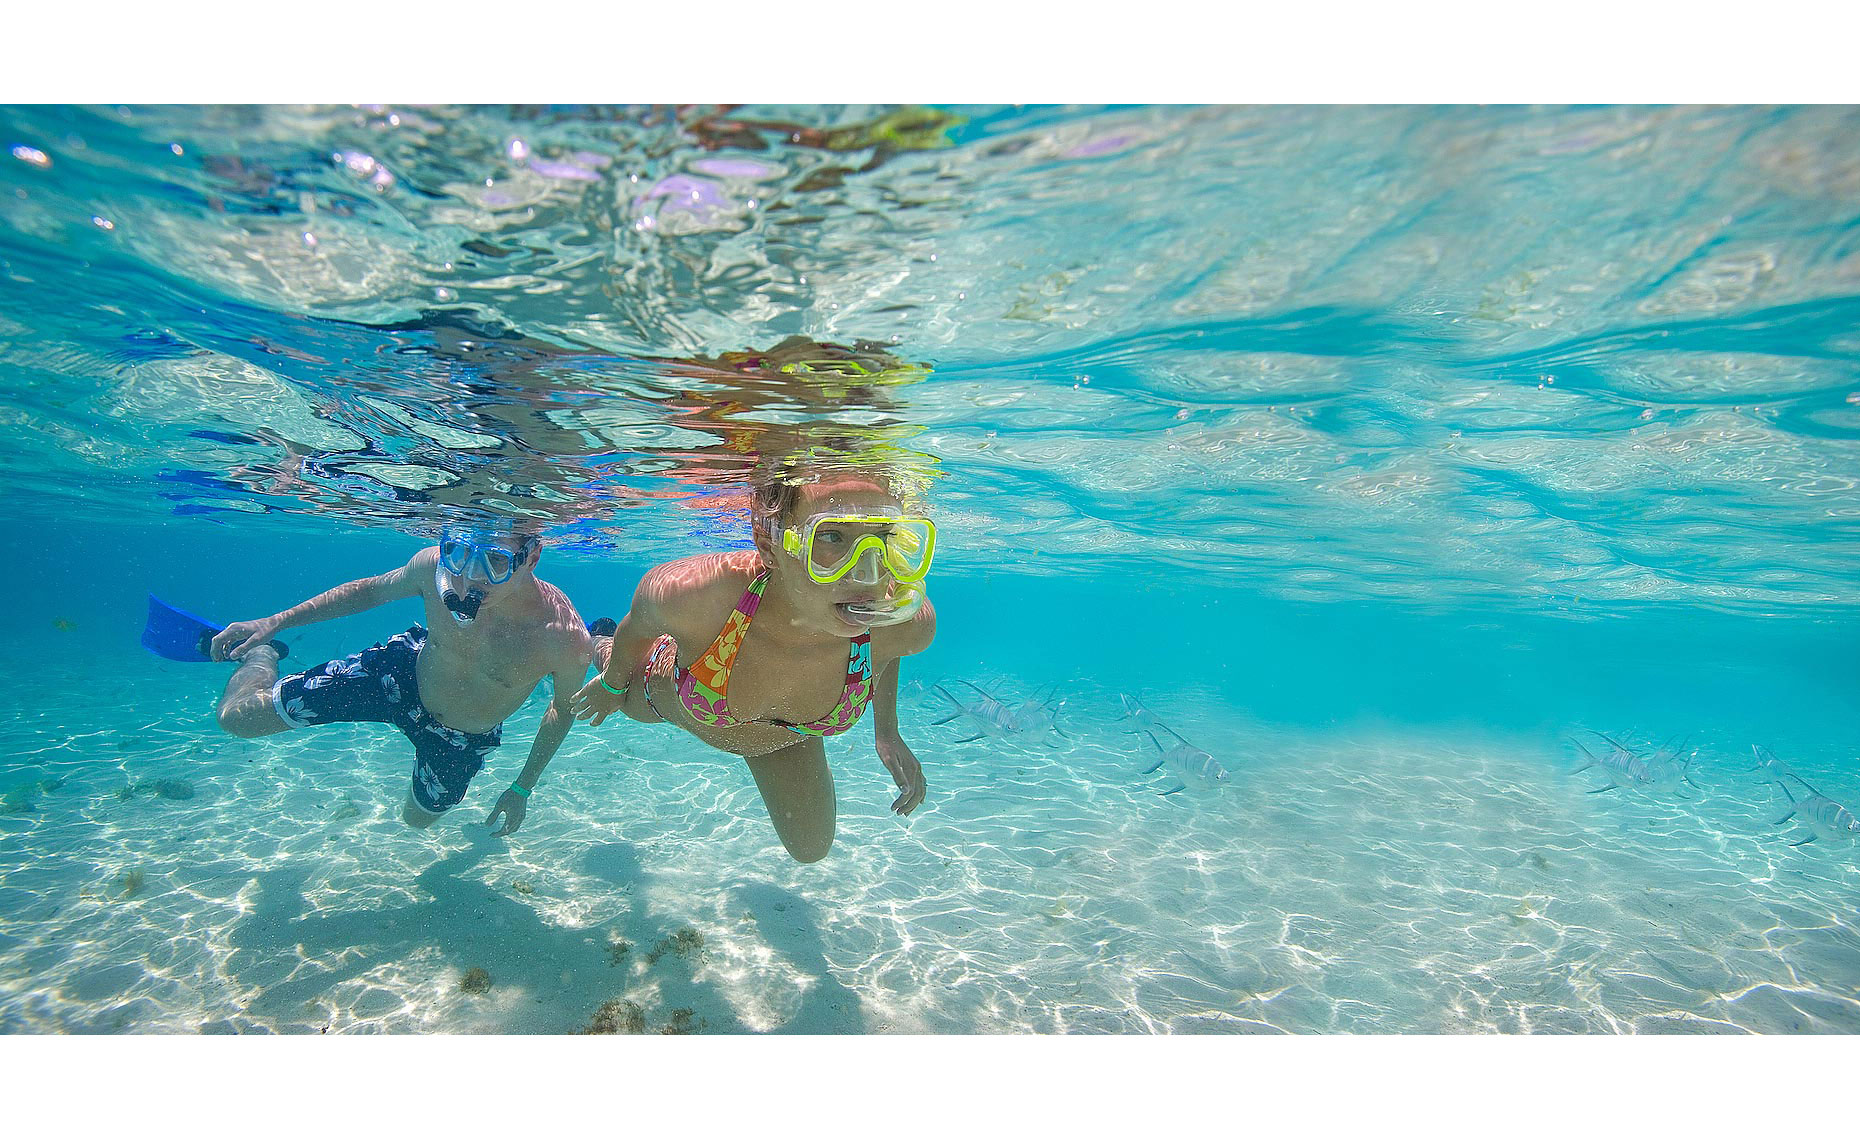 underwater view of couple snorkeling Mexico_Allegro__resort lifestyle photography_Robert-Holland